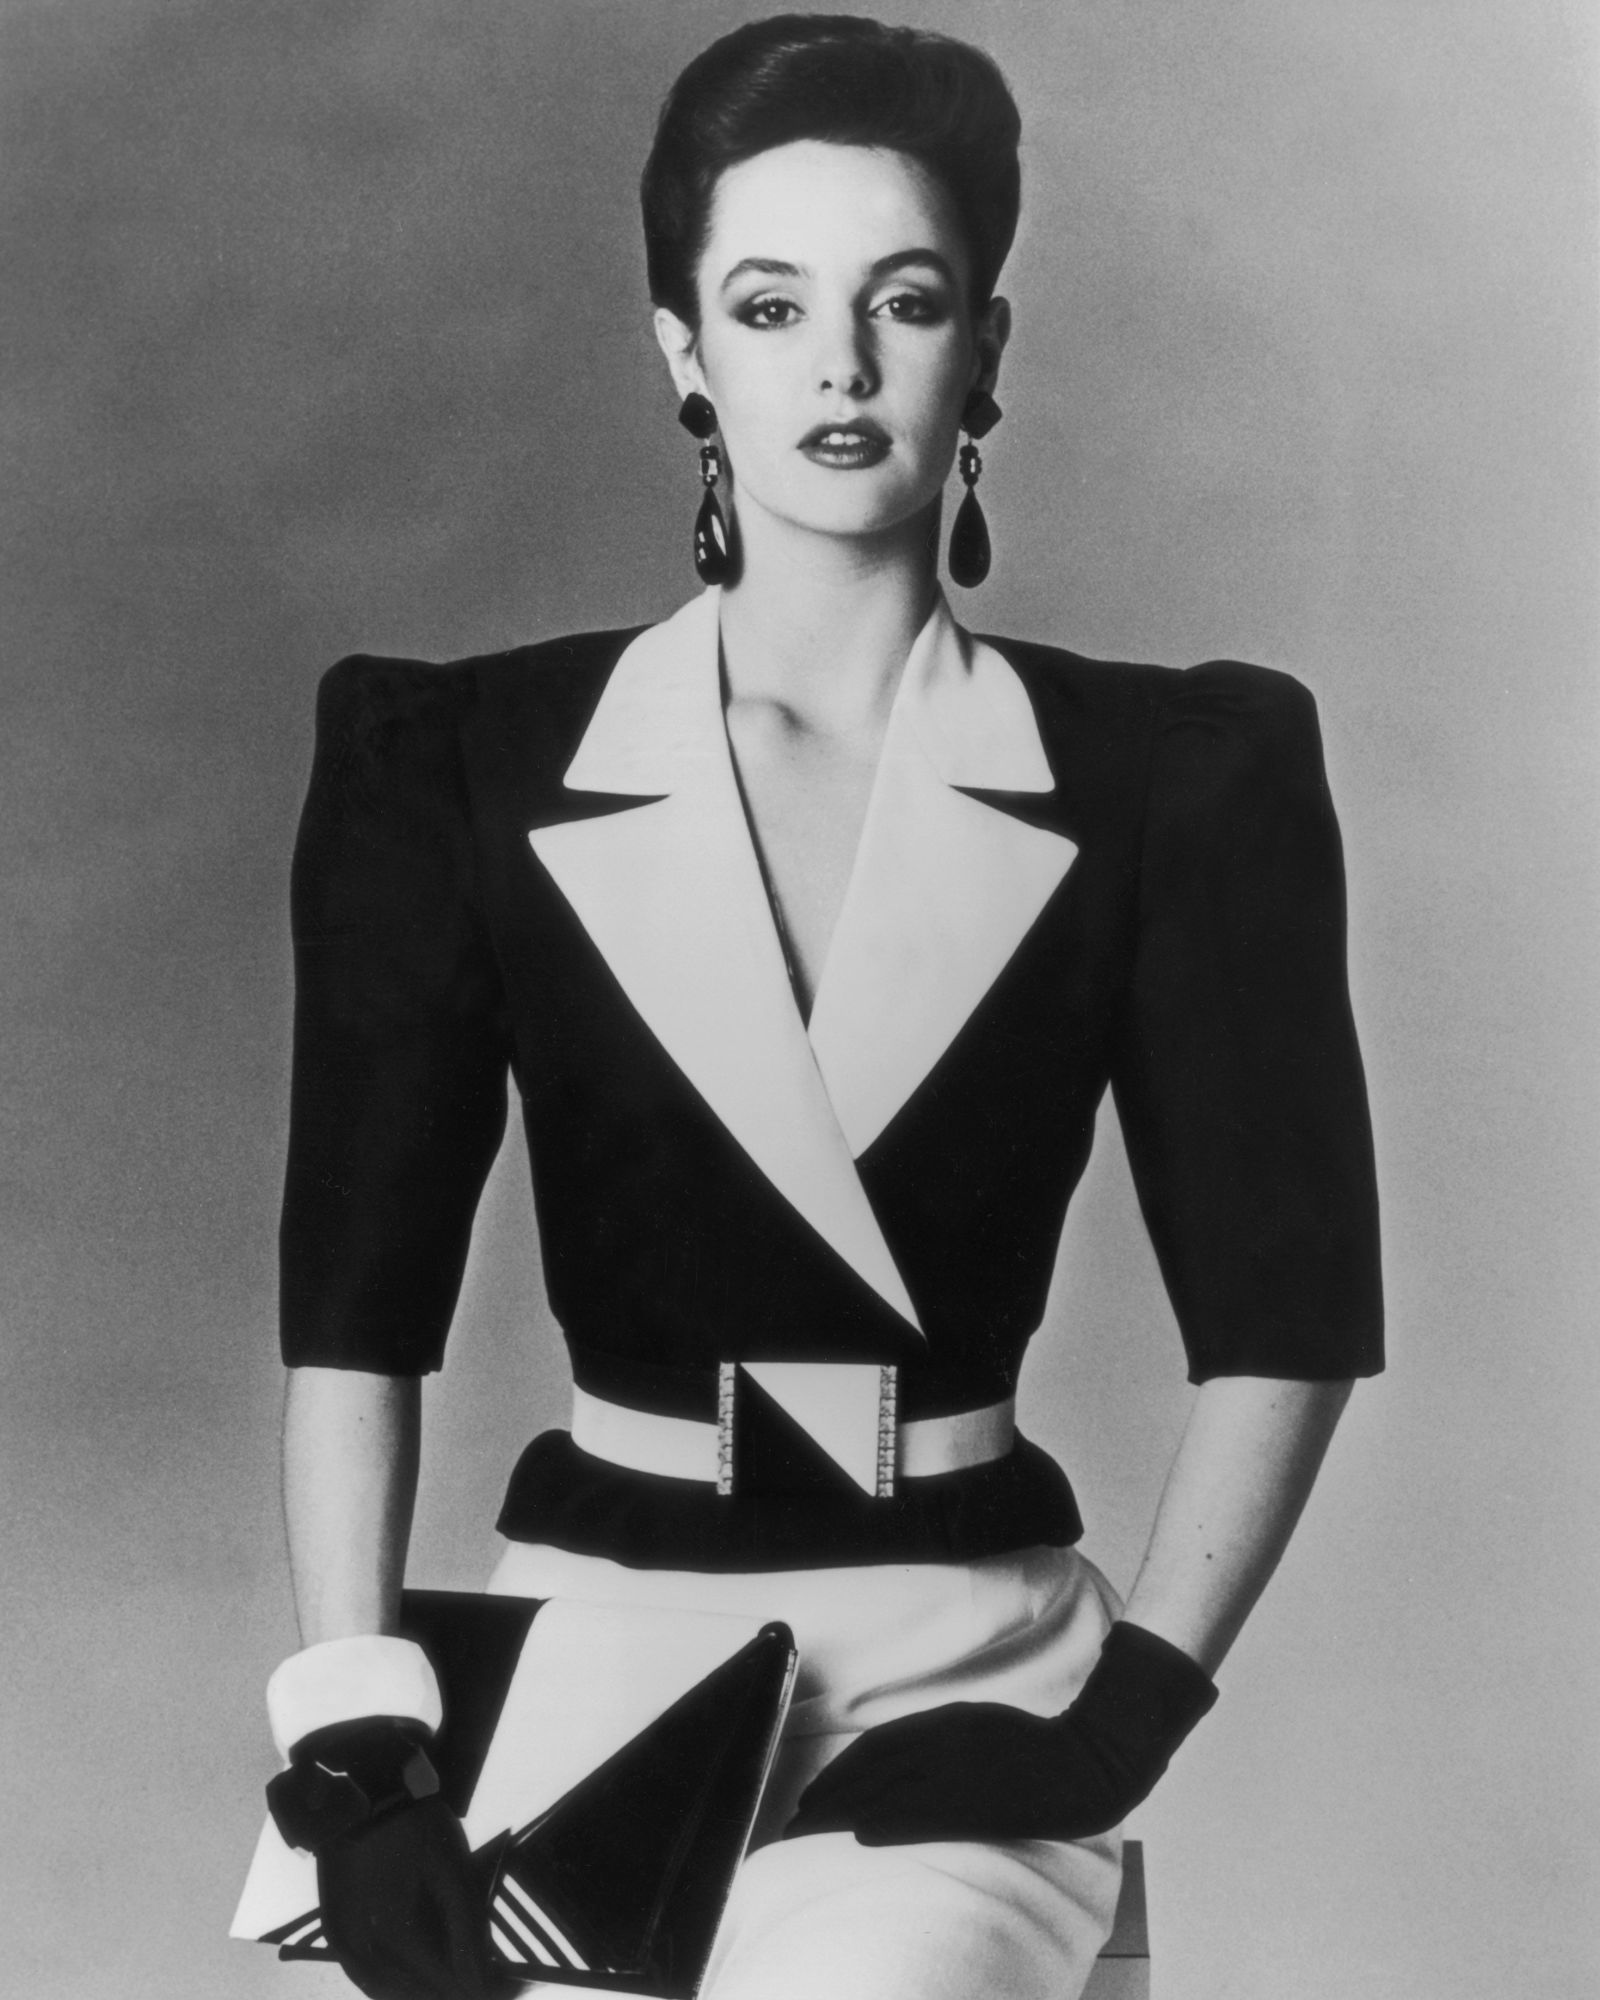 https://i2.wp.com/ghk.h-cdn.co/assets/15/39/1600x2000/gallery-1443036593-shoulder-pads.jpg